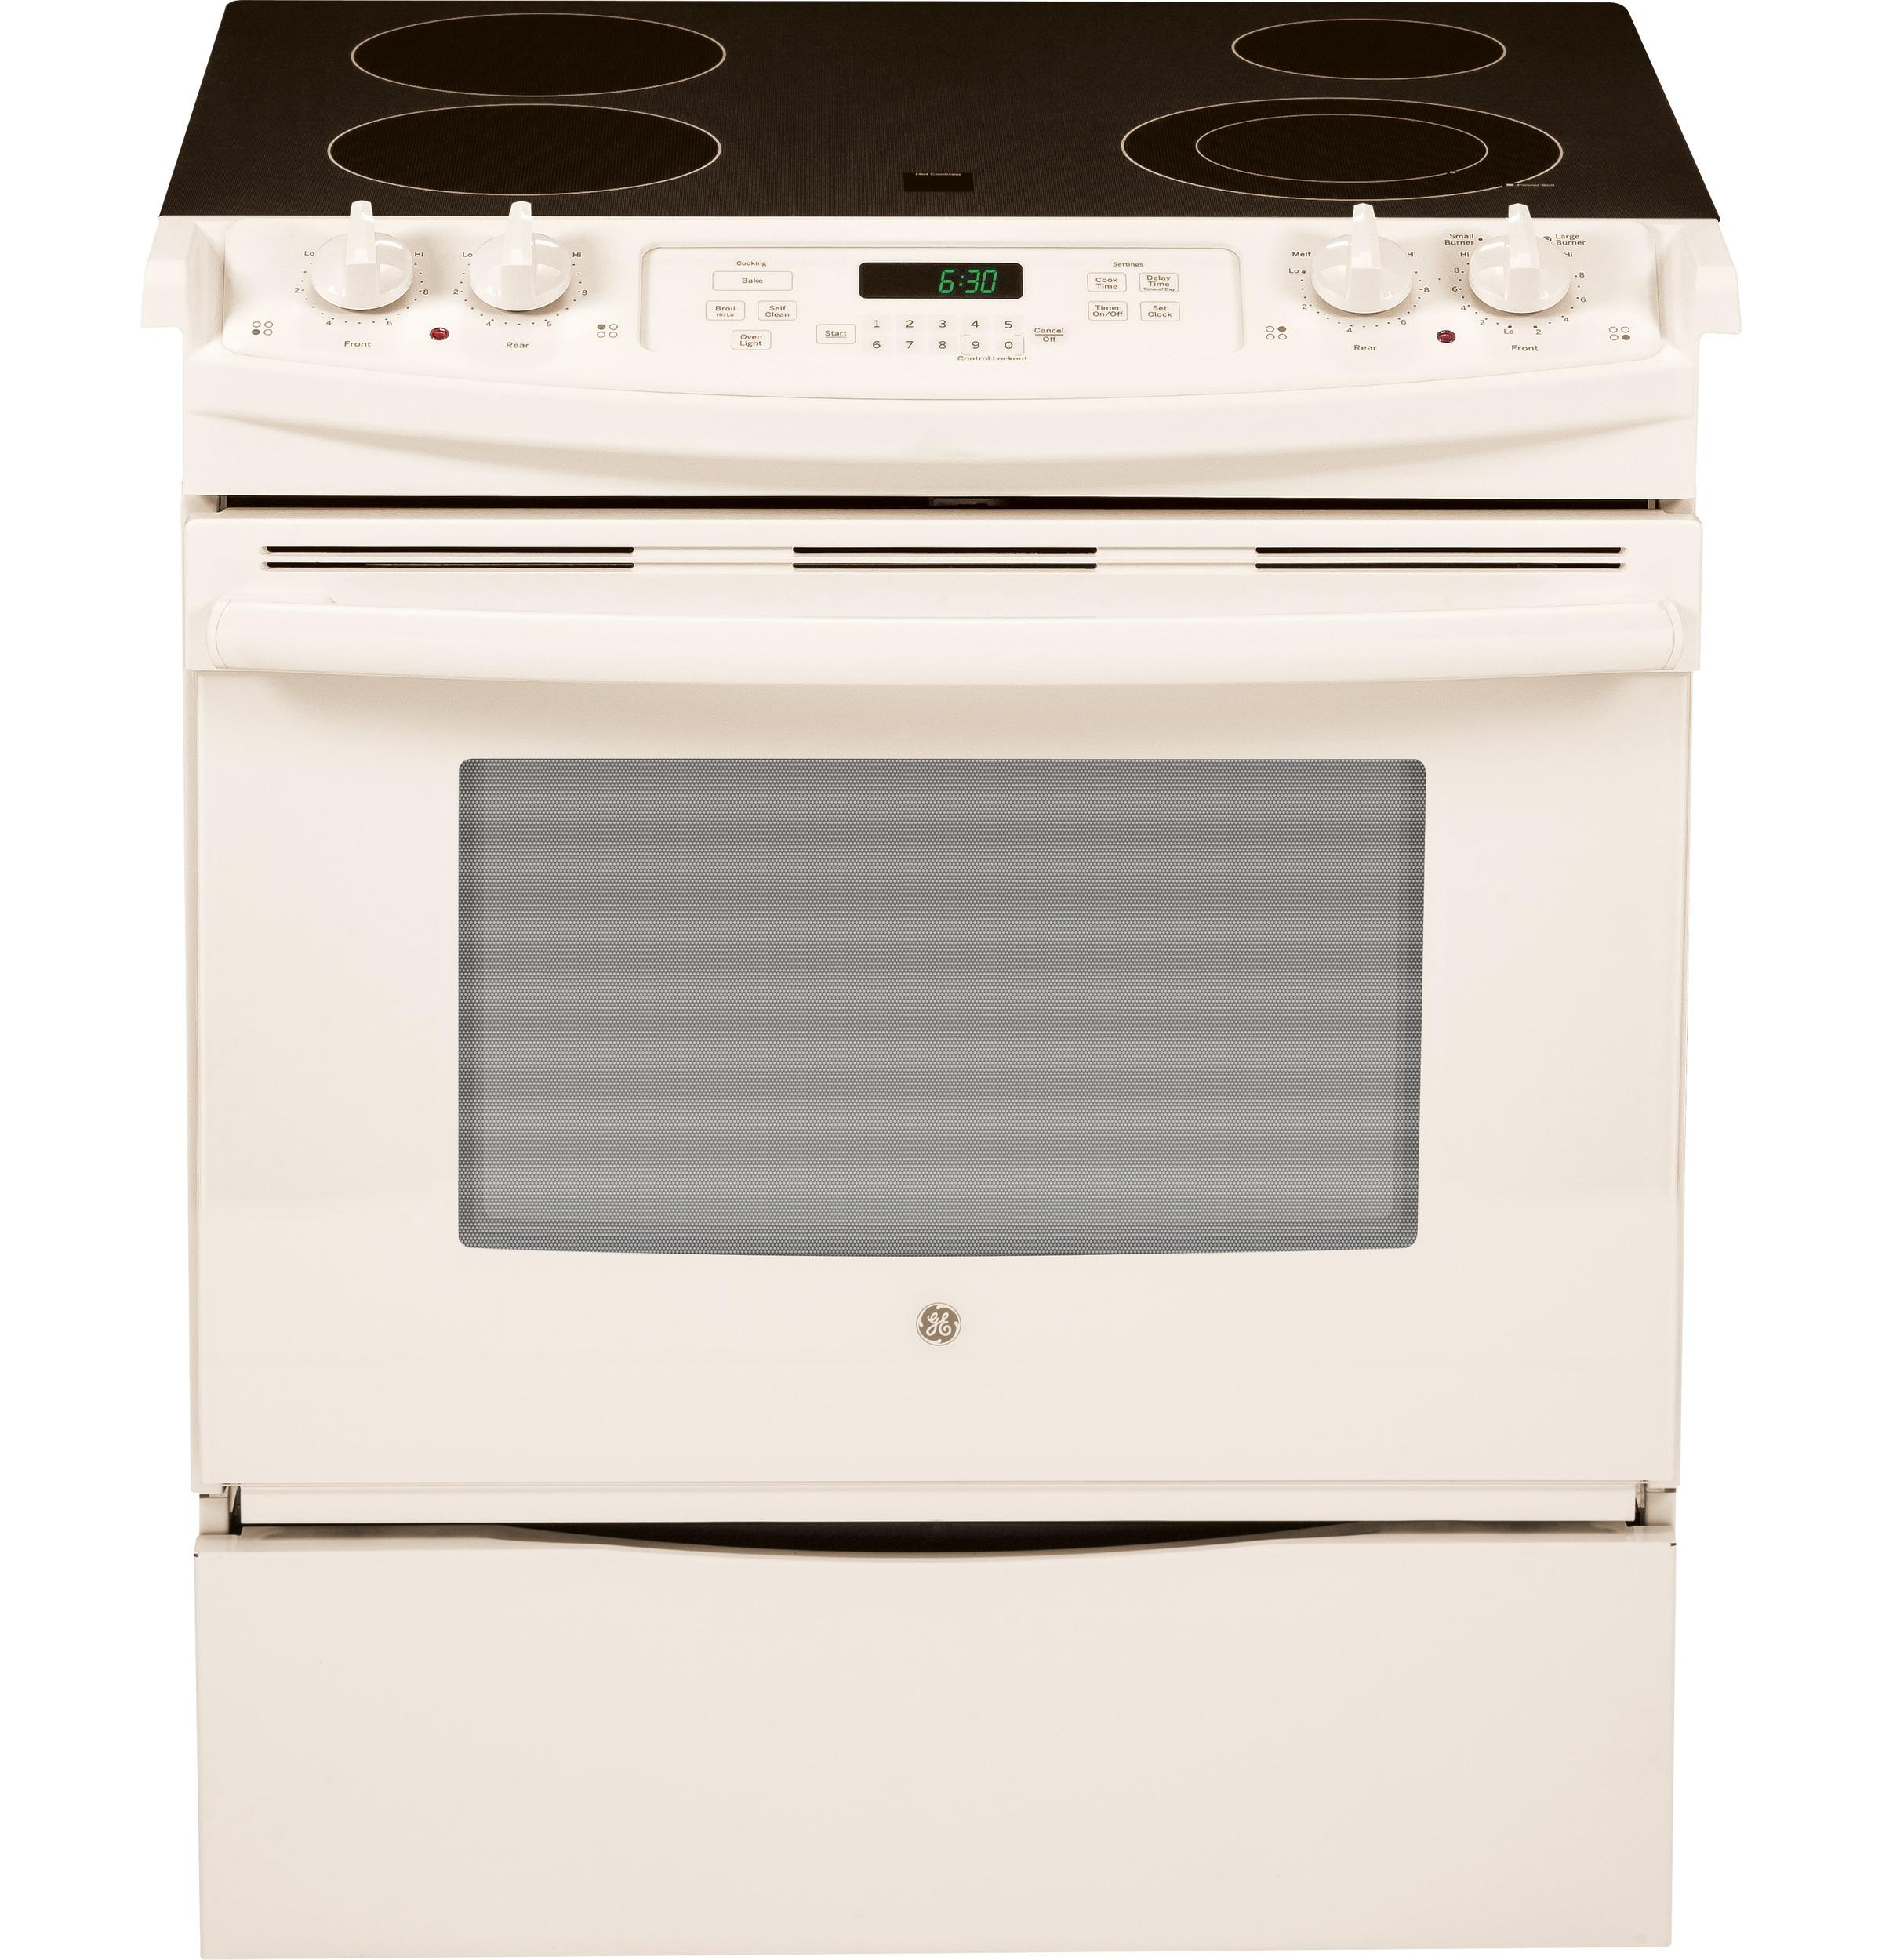 "GE(R) 30"" Slide-In Front Control Electric Range